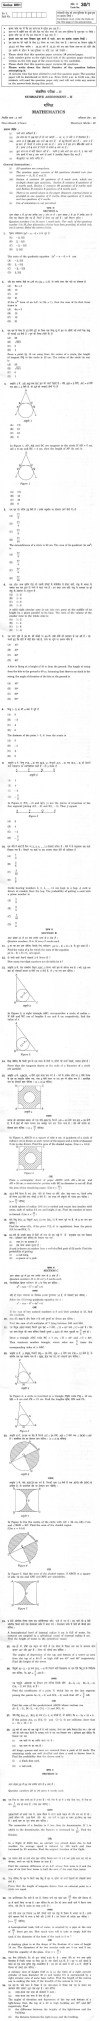 CBSE Class X Previous Year Question Papers 2012 Mathematics